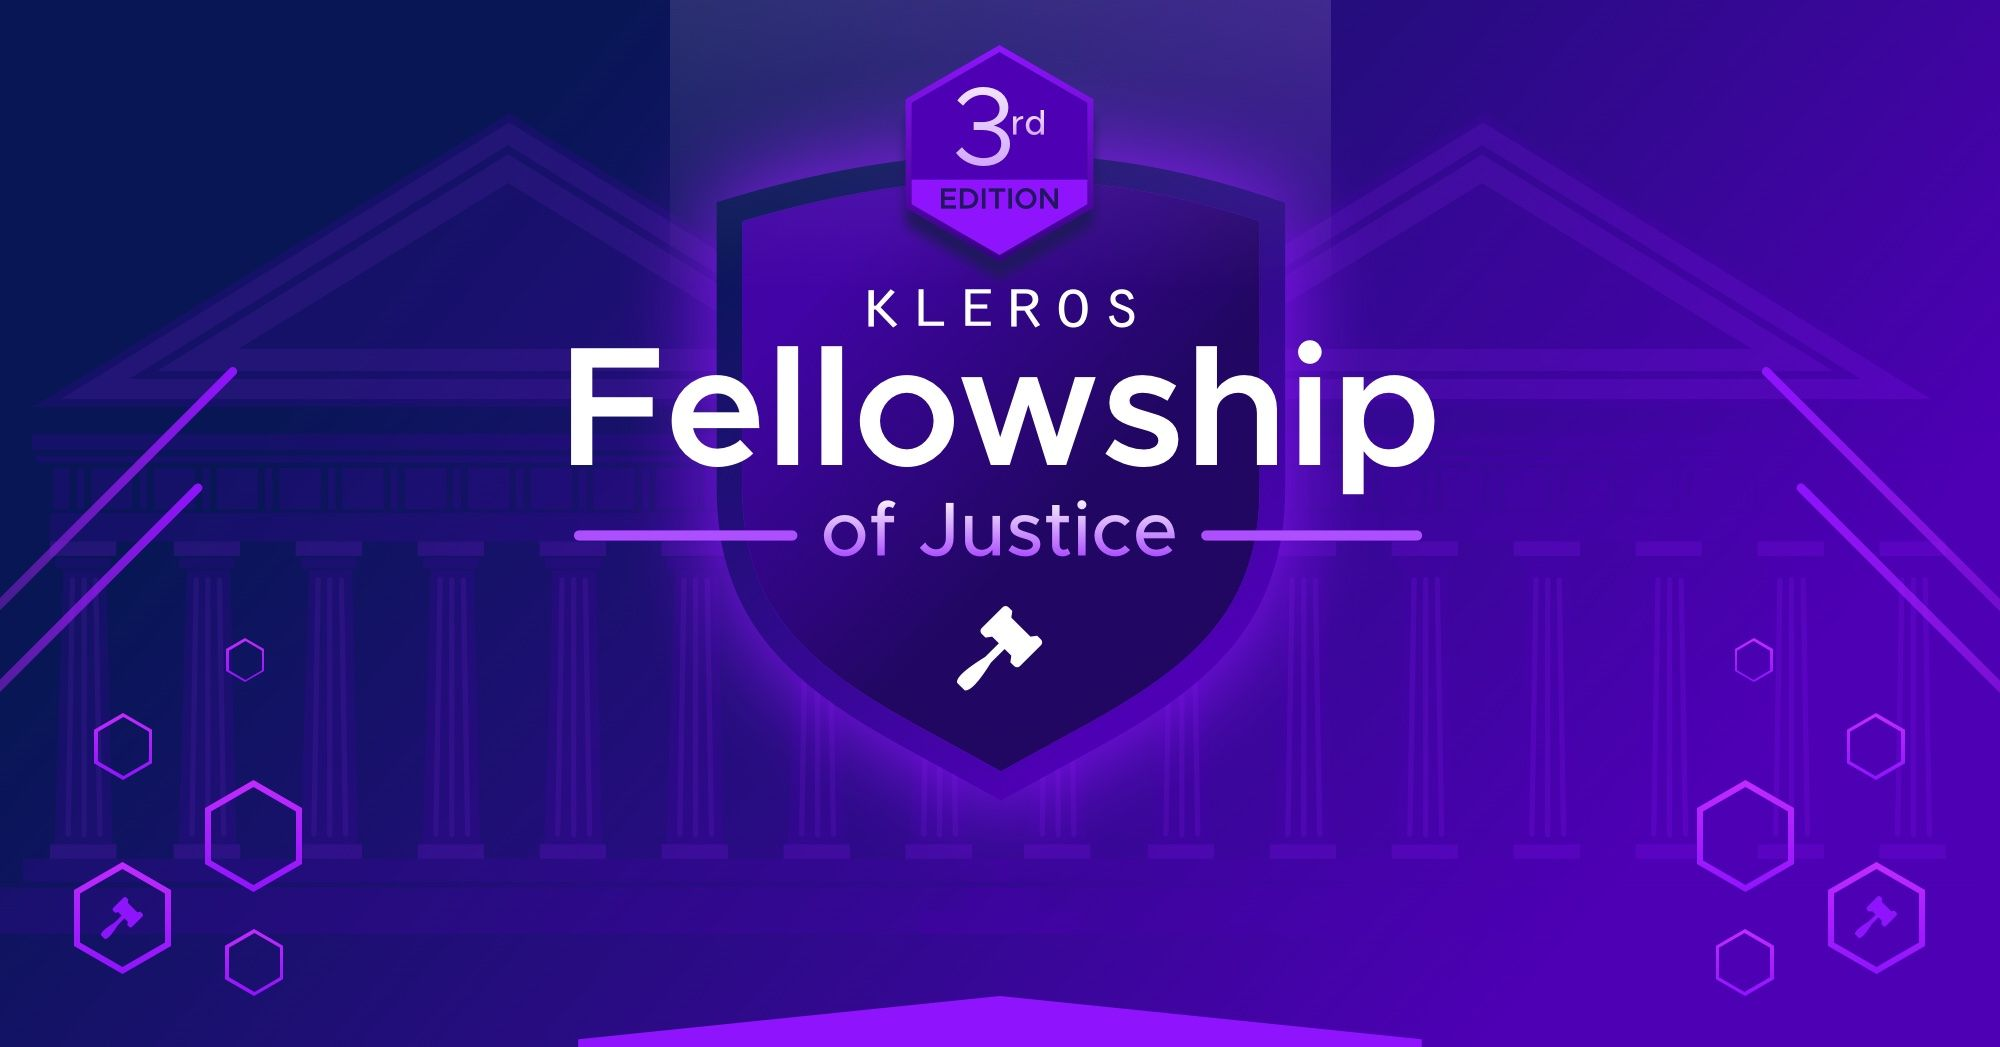 The Kleros Fellowship of Justice: Introducing the Third Generation